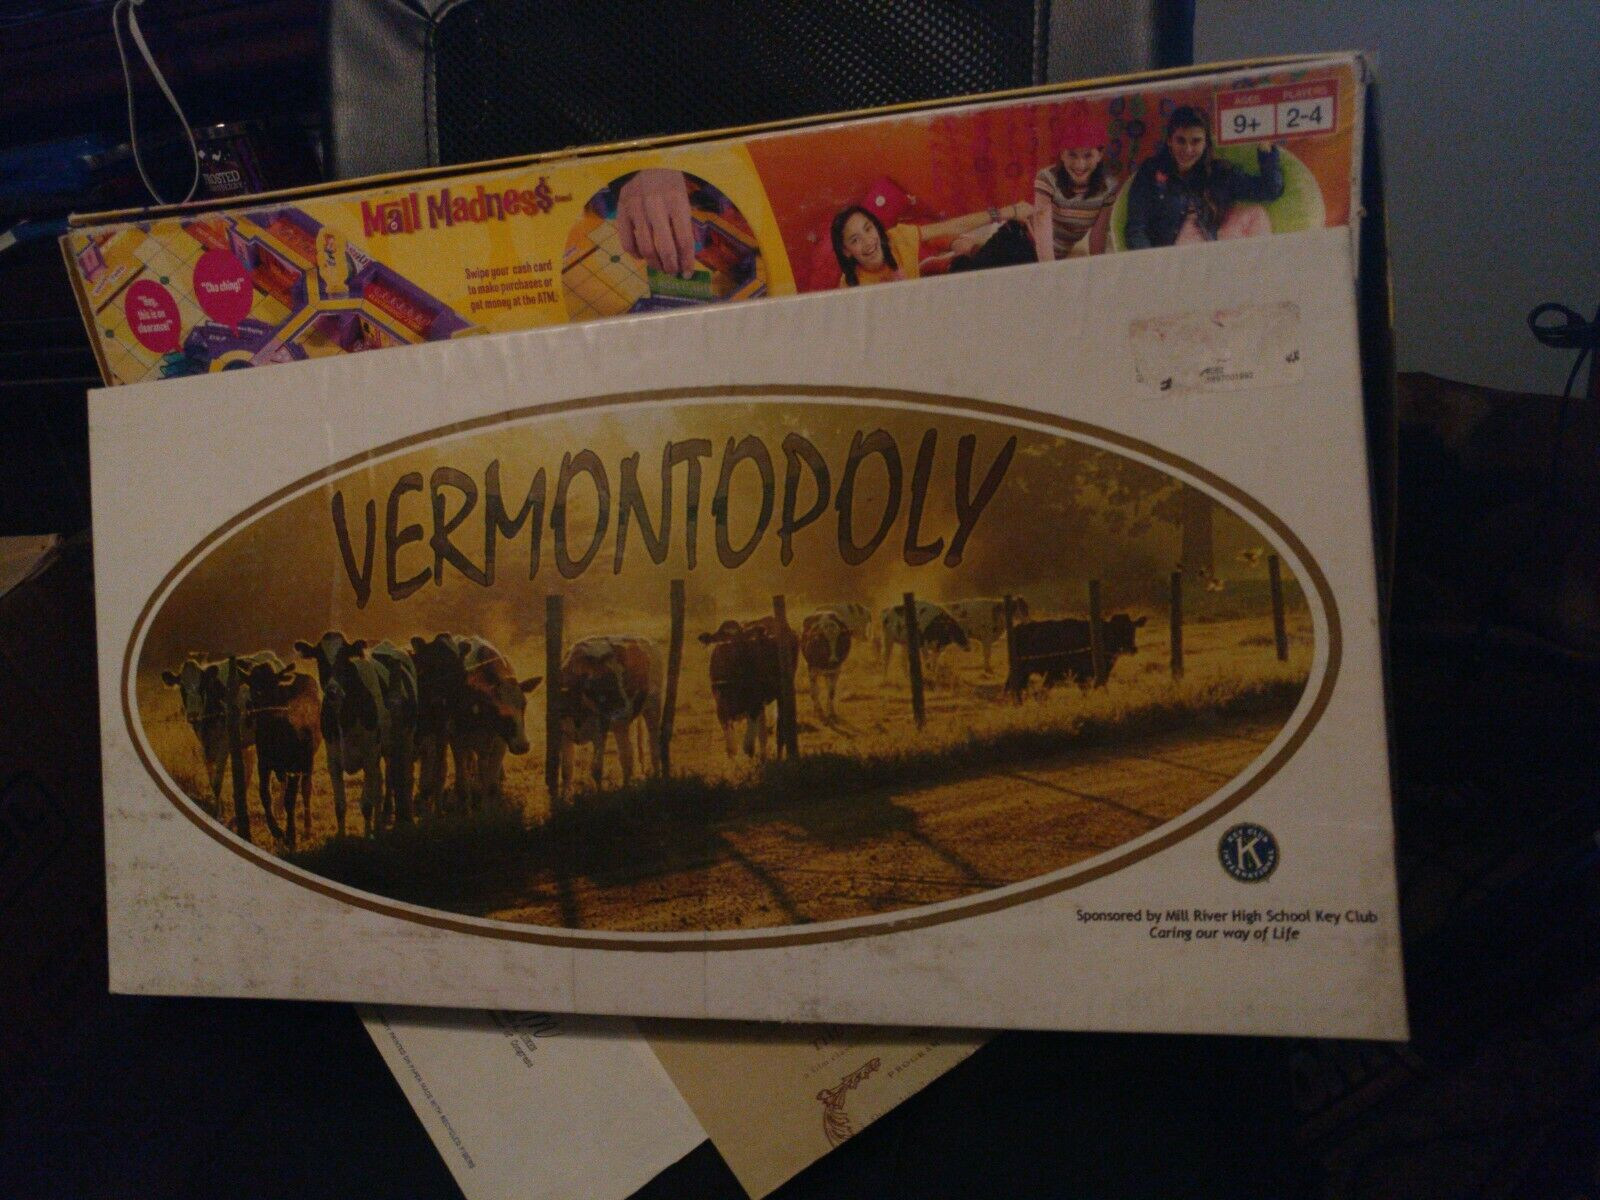 BRAND NEW VERMONTOPOLY Game - Monopoly - Board Game MILL RIVER HIGH SCHOOL KEY